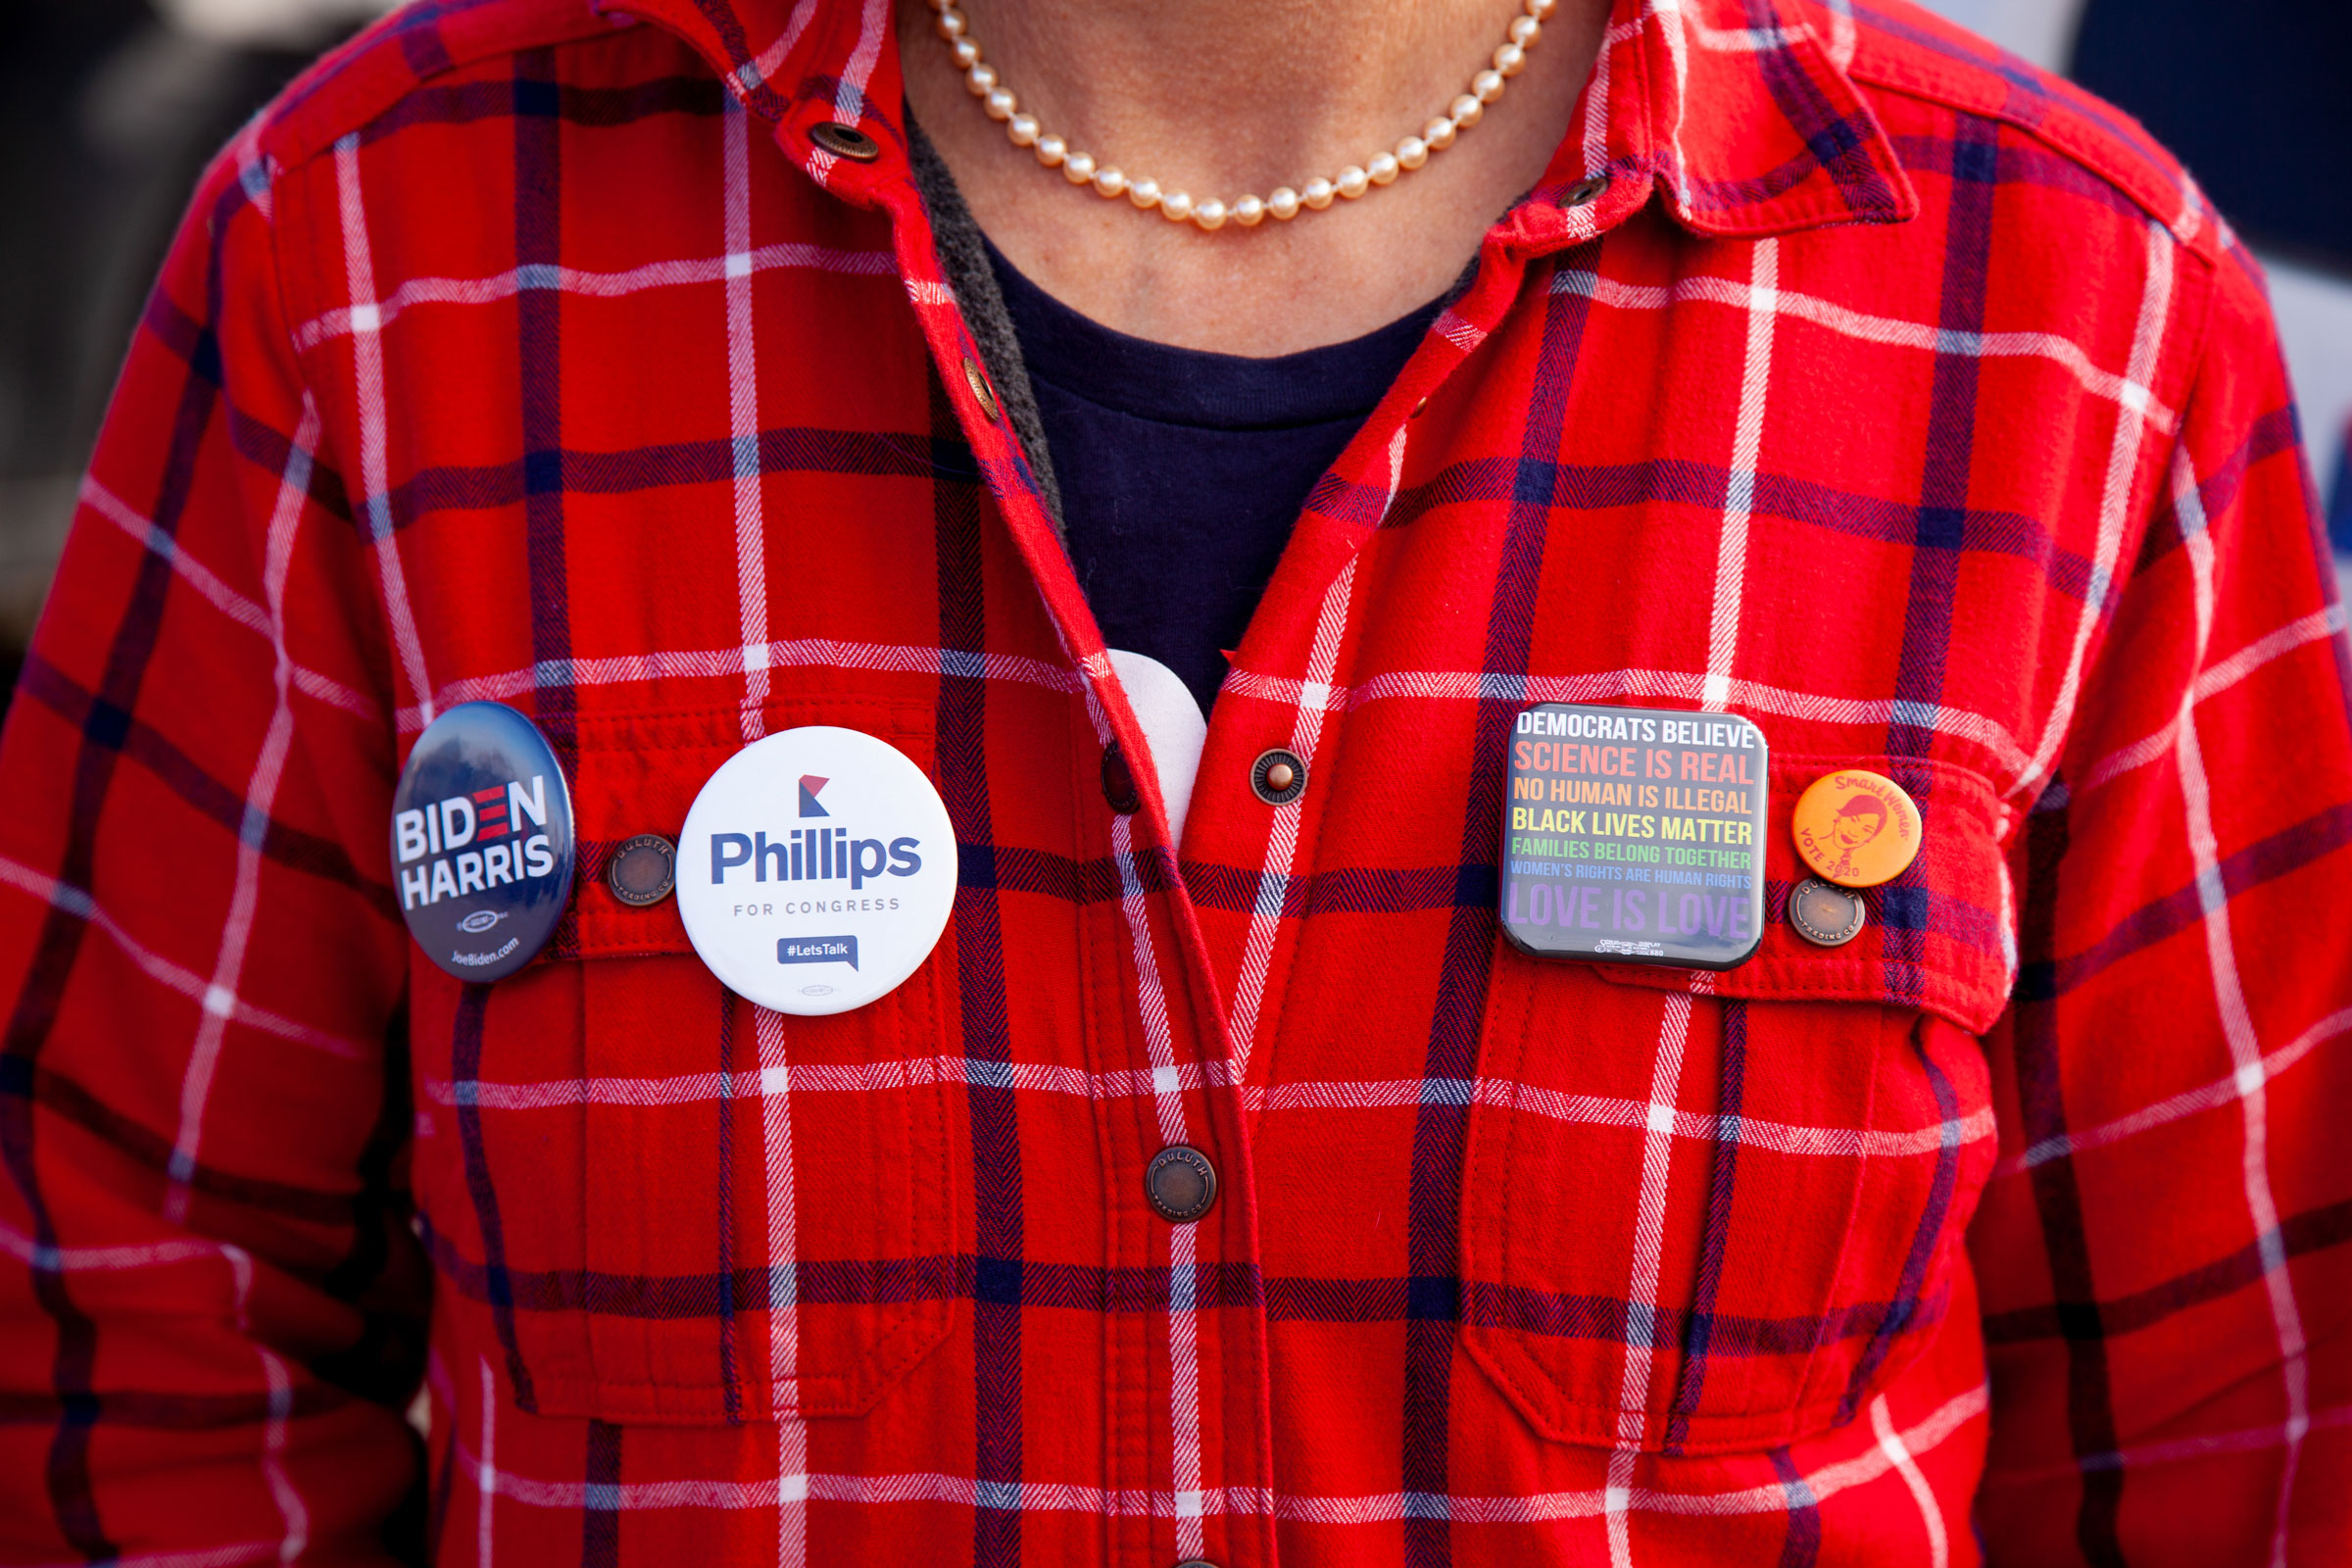 Phillips and Biden-Harris campaign buttons